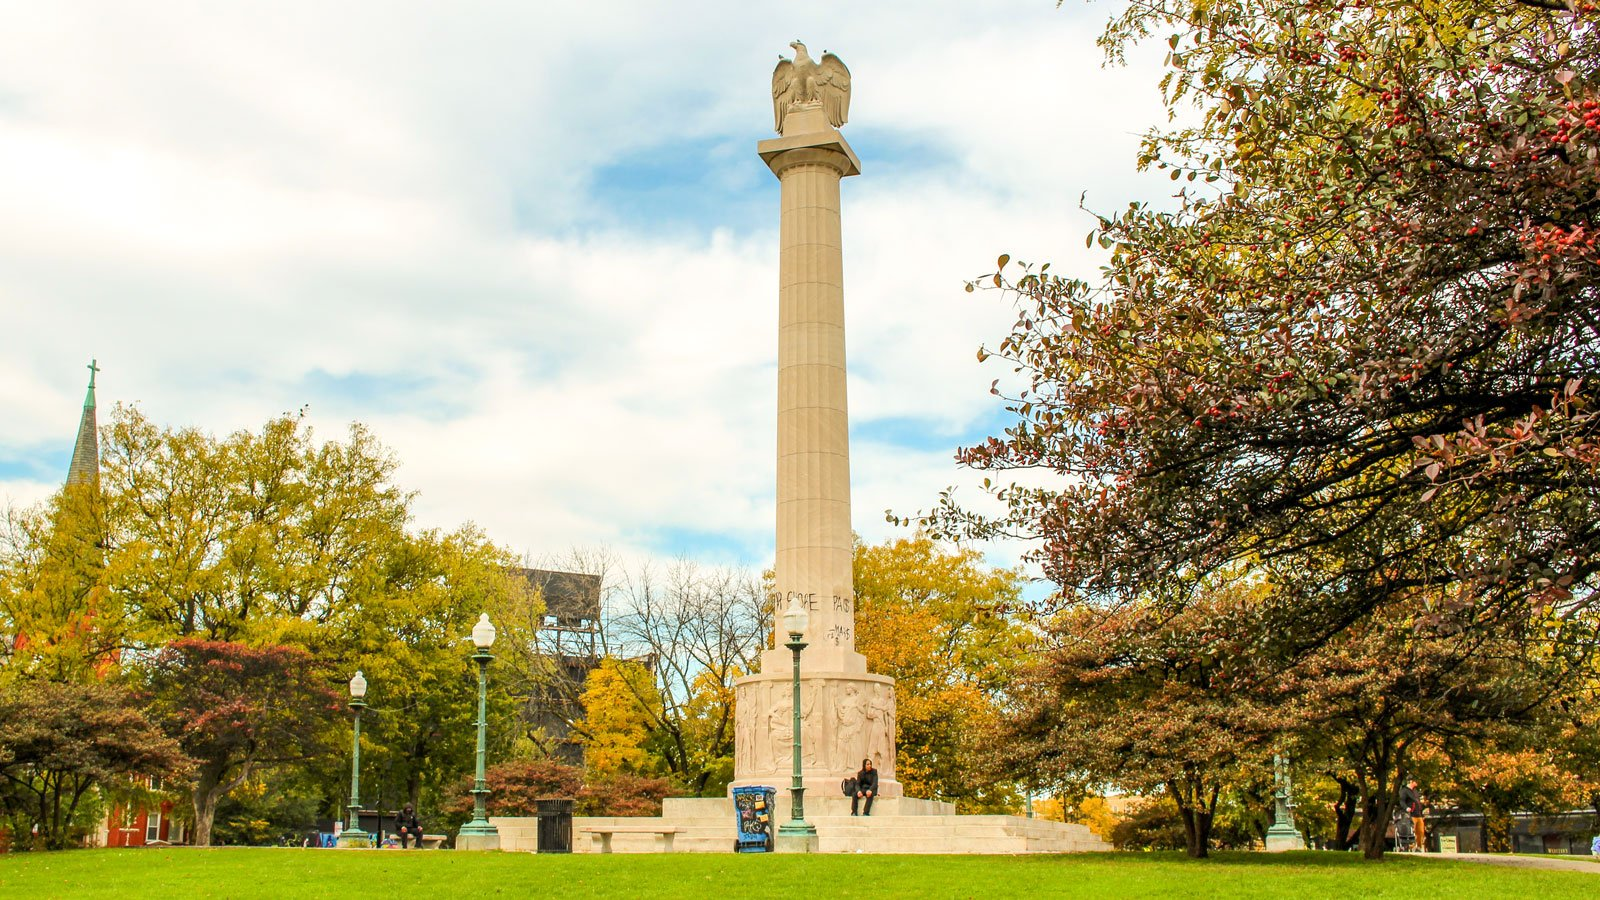 Centennial Monument, Logan Square, Chicago